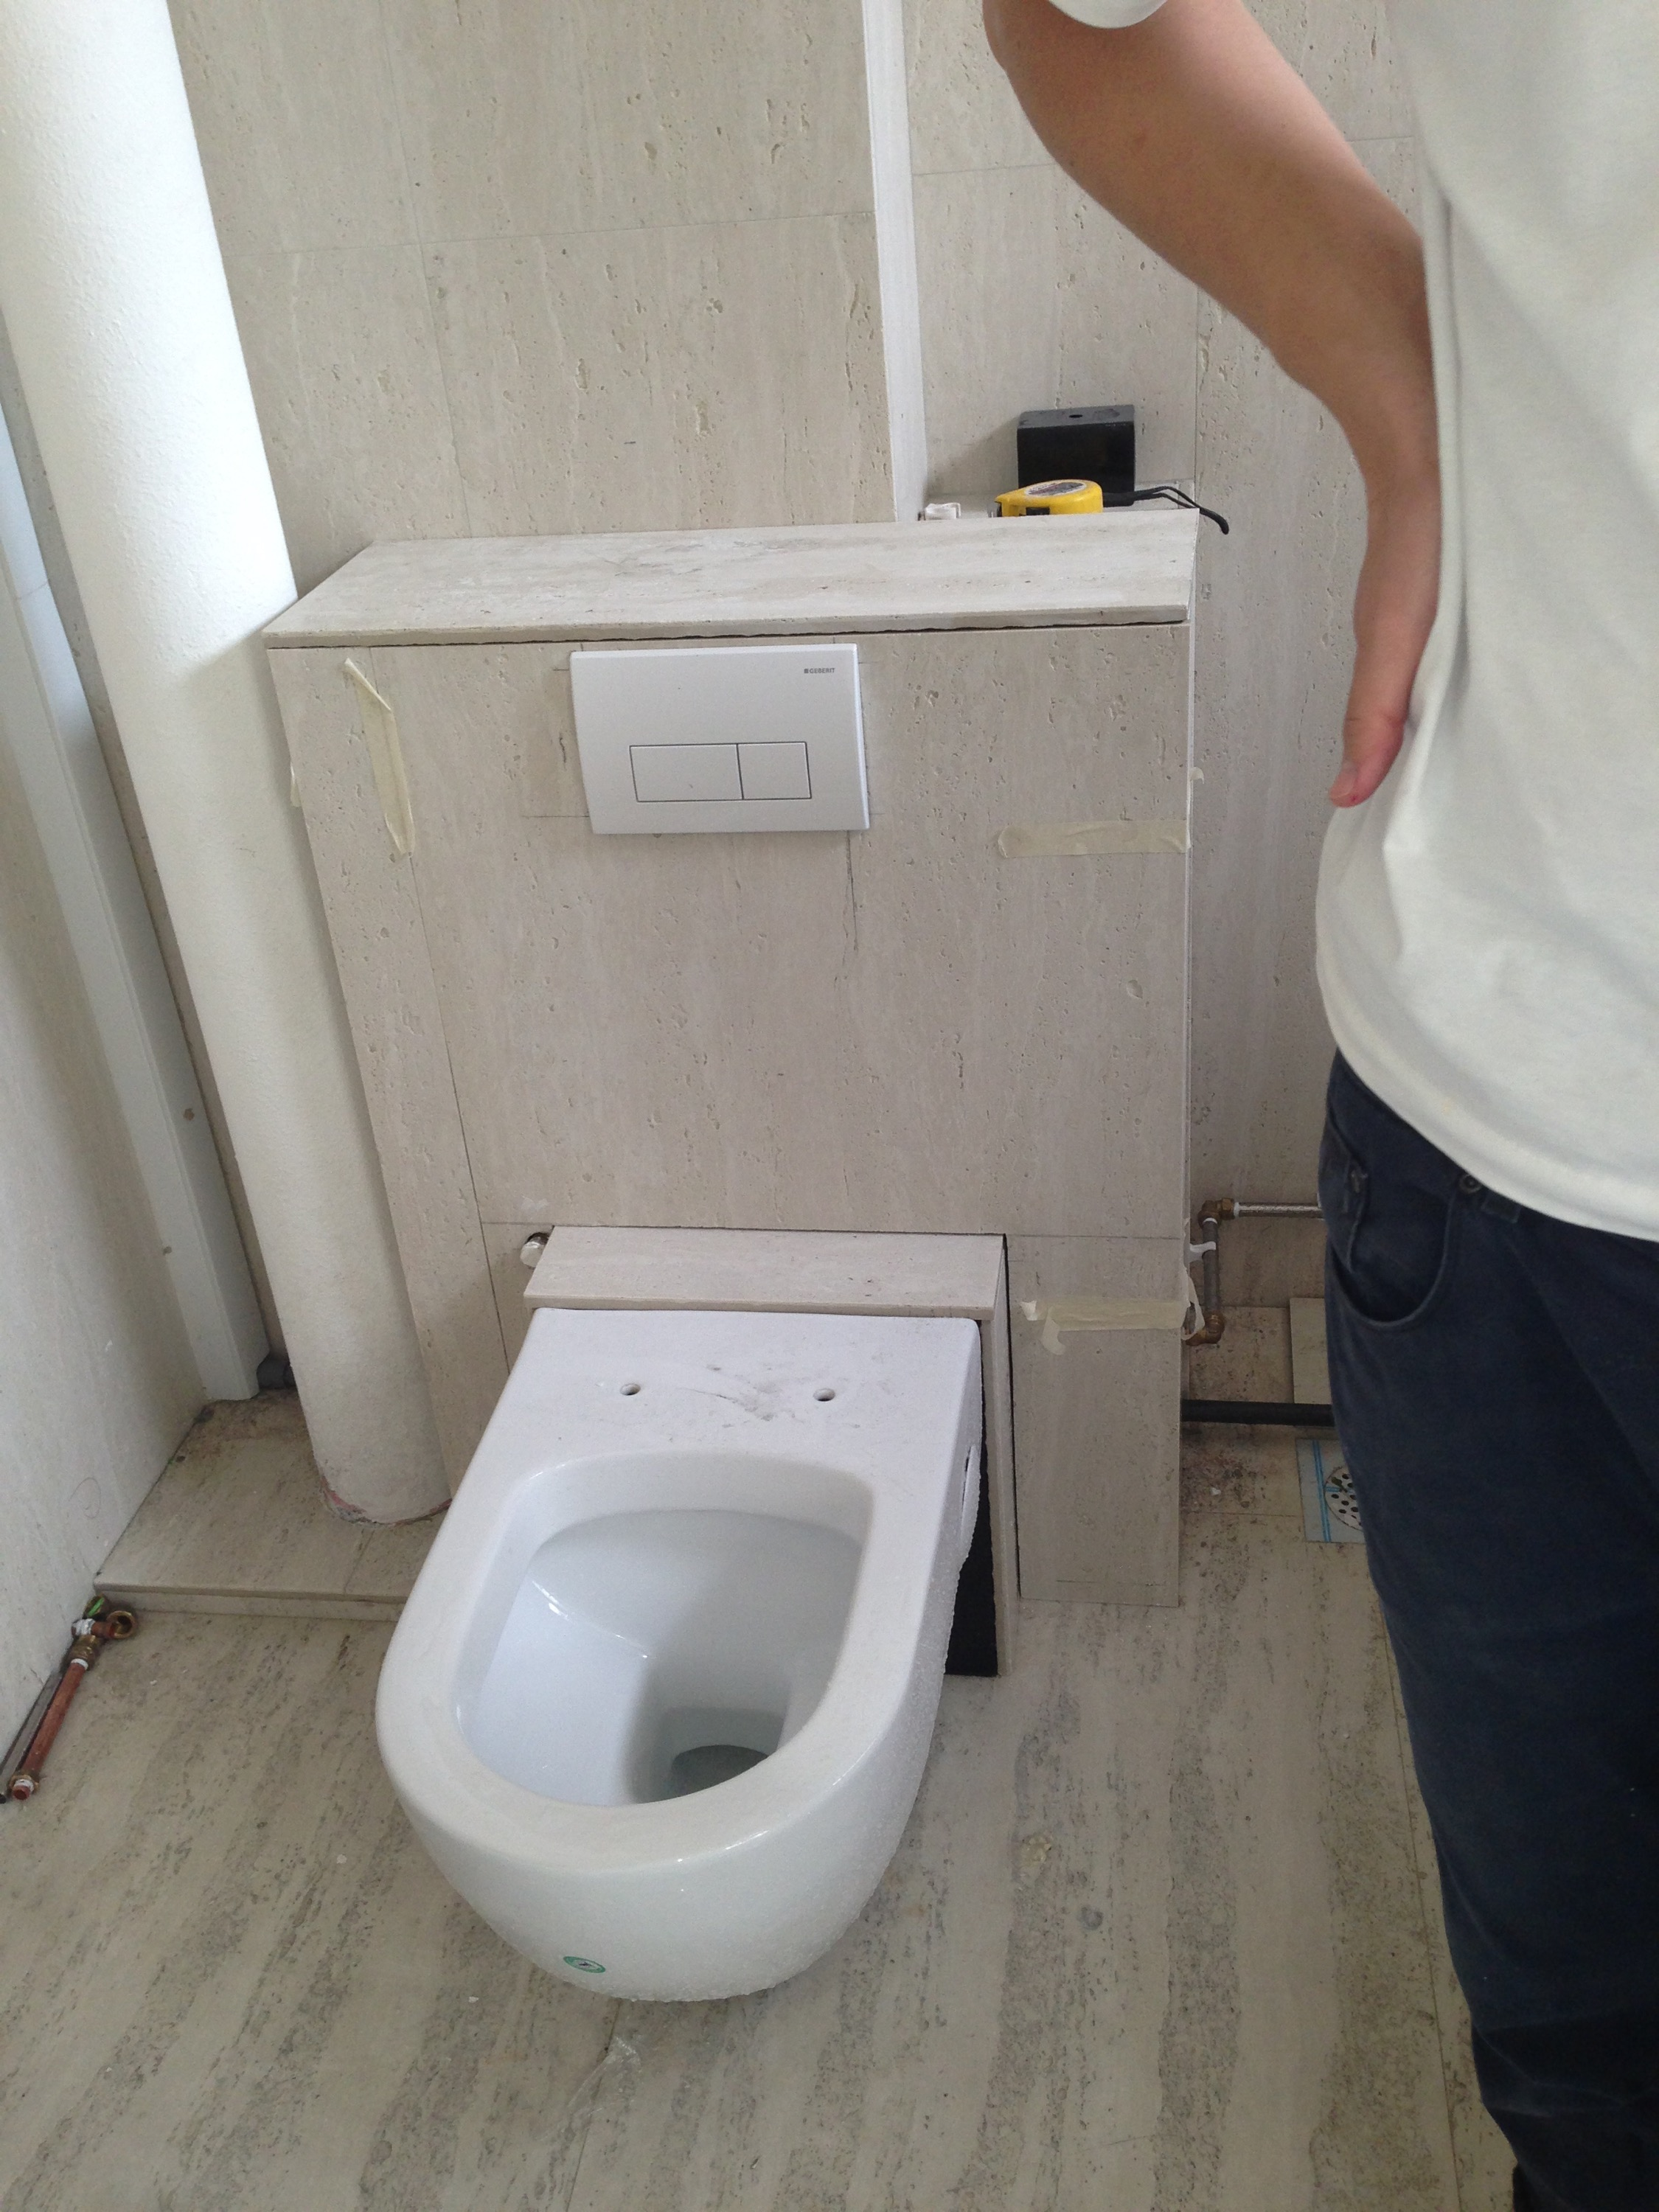 Reliable Plumber Diy Wall Mounted Toilet Bowl